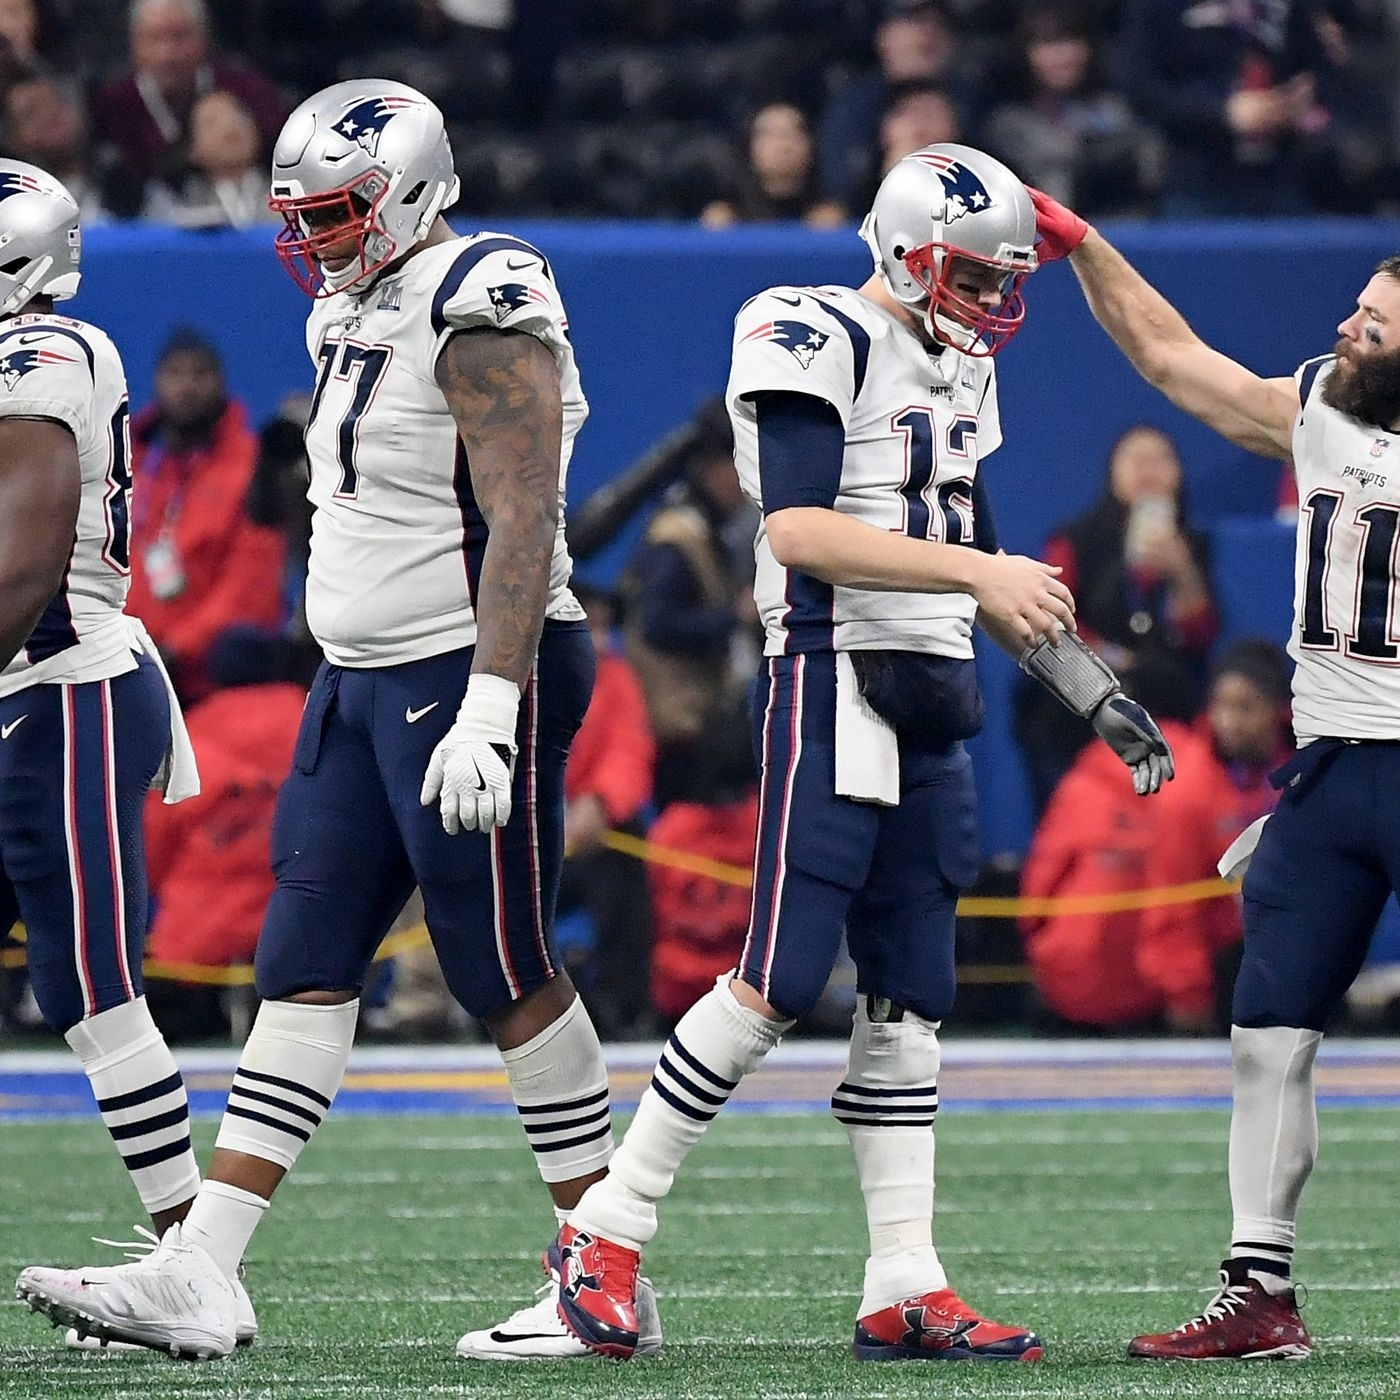 Julian Edelman Should Give His 2019 Super Bowl Mvp To The throughout Super Bowl Mvp Vote Now